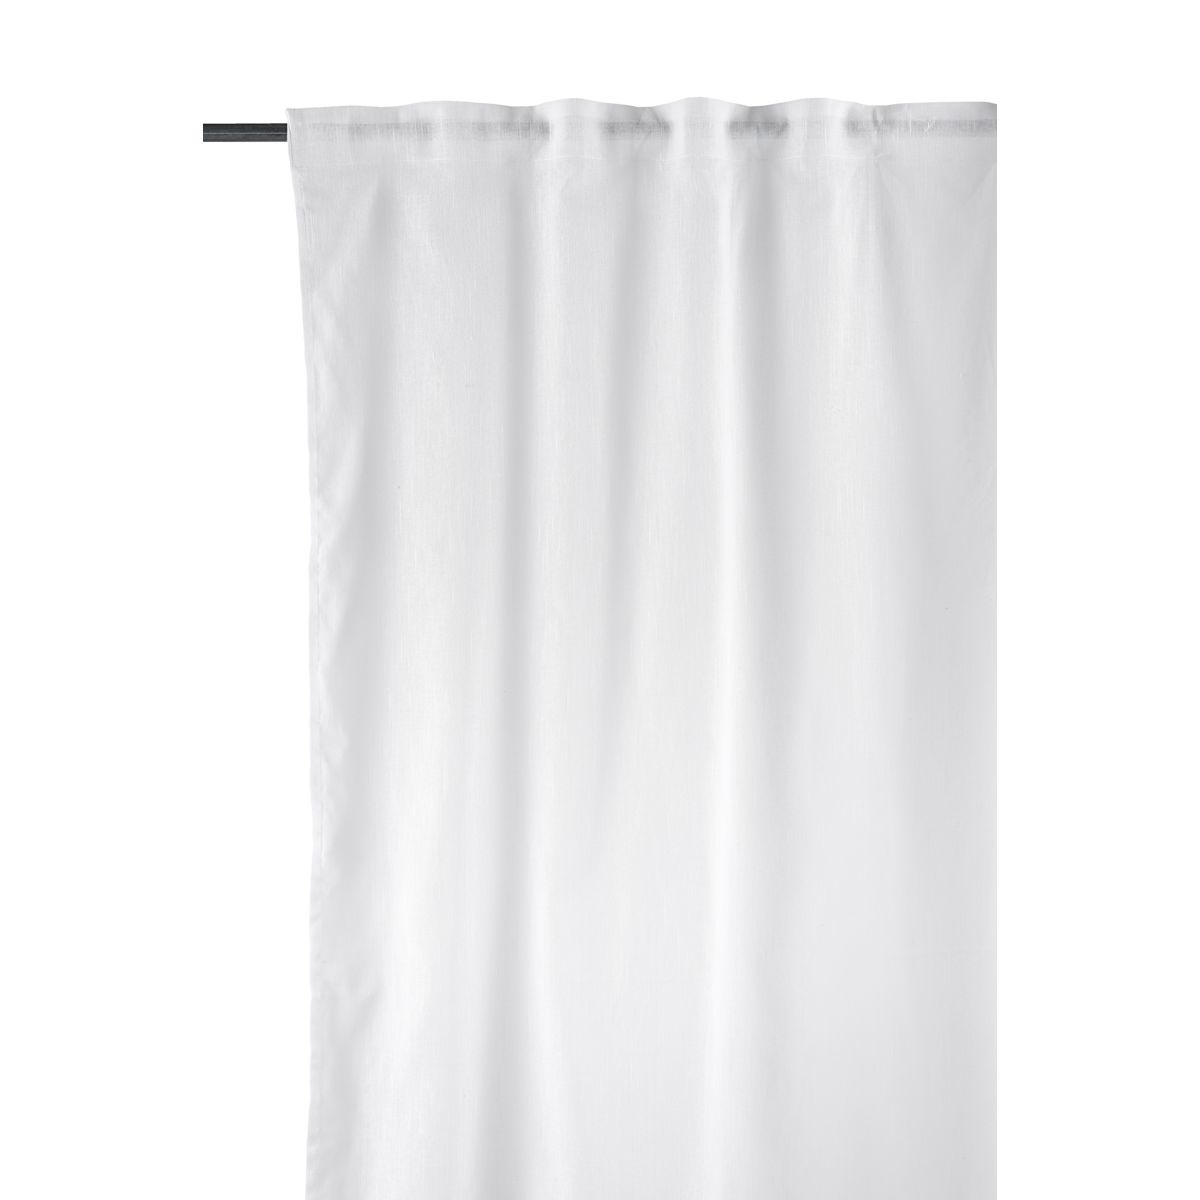 House Doctor Linen curtain, Set of 2 - white - 150x300cm - House Doctor